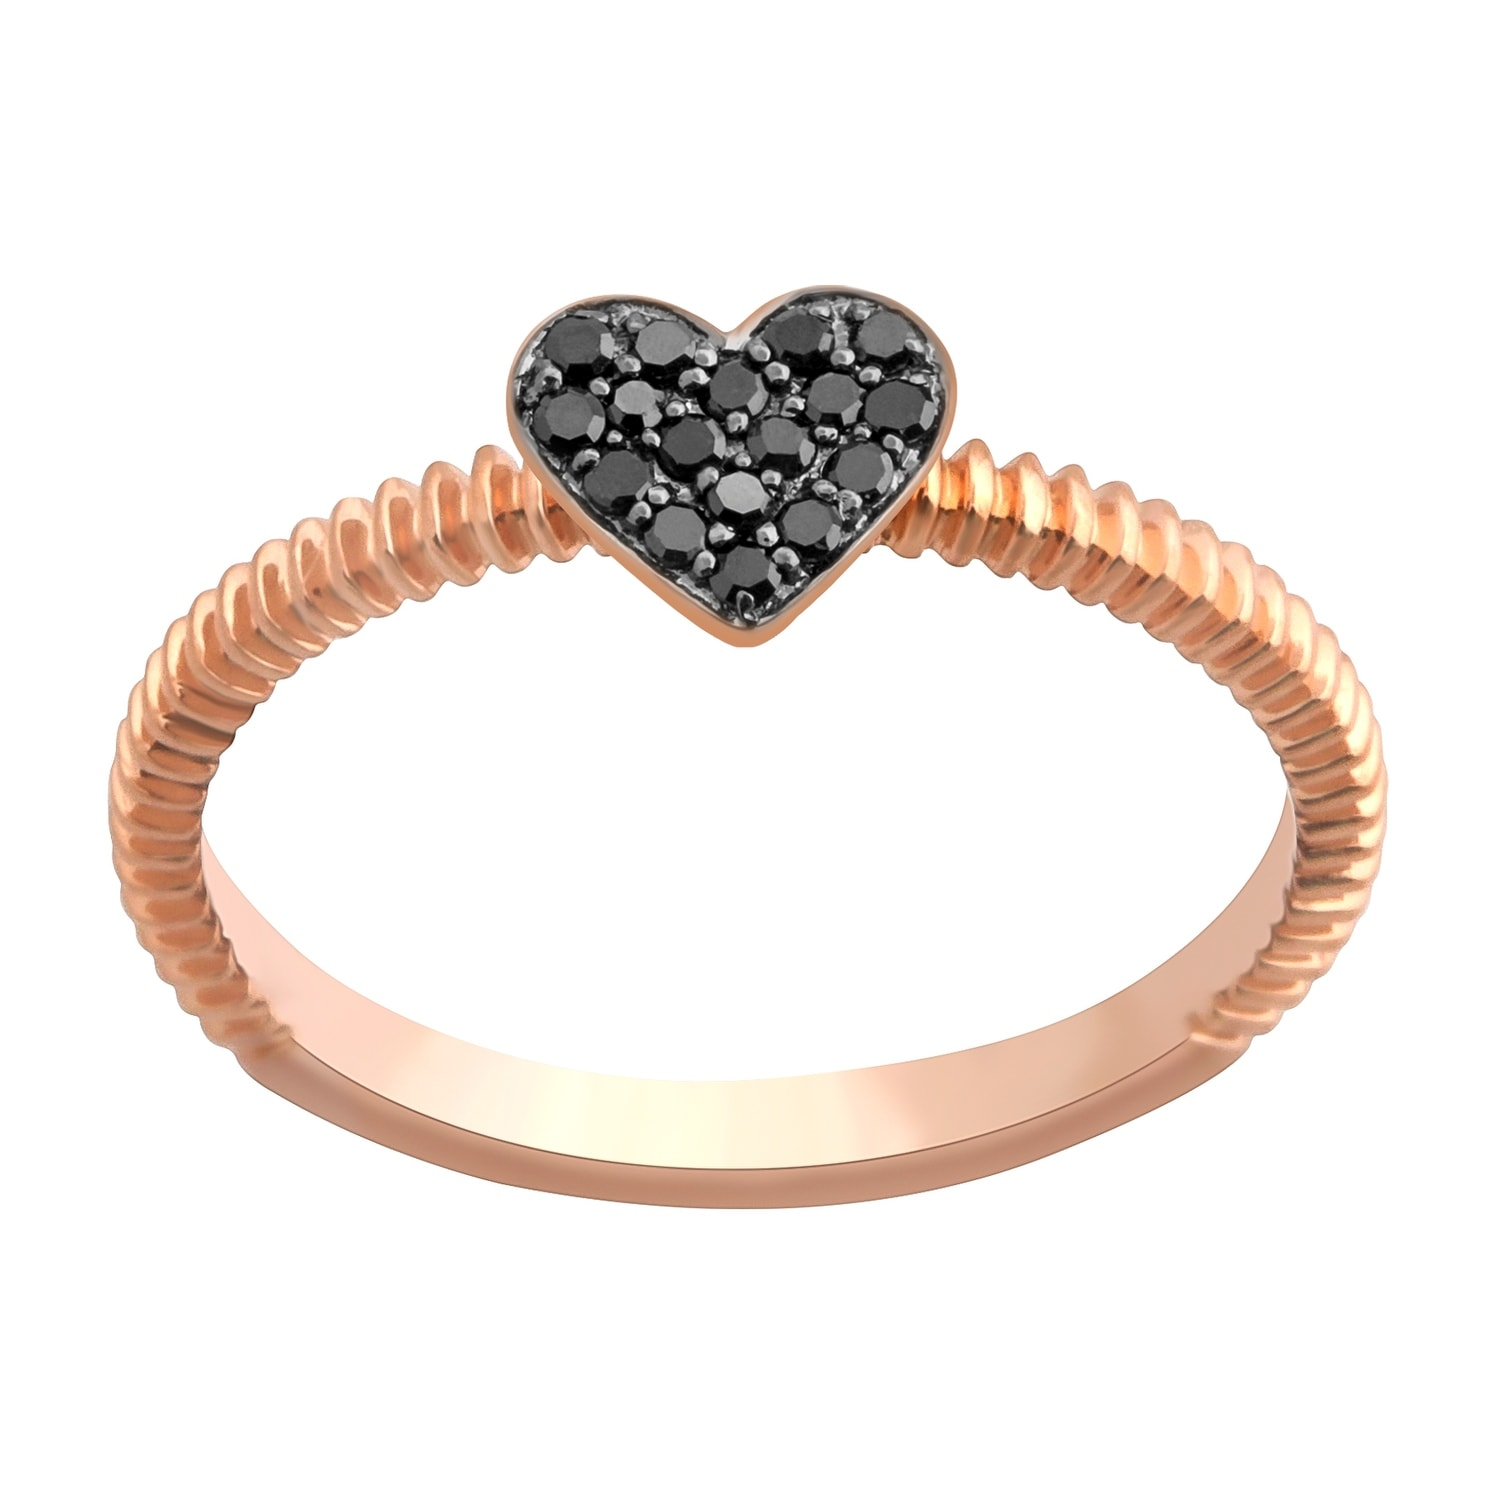 Prism Jewel Round Black Diamond Heart Shaped Valentine Ring - Thumbnail 0